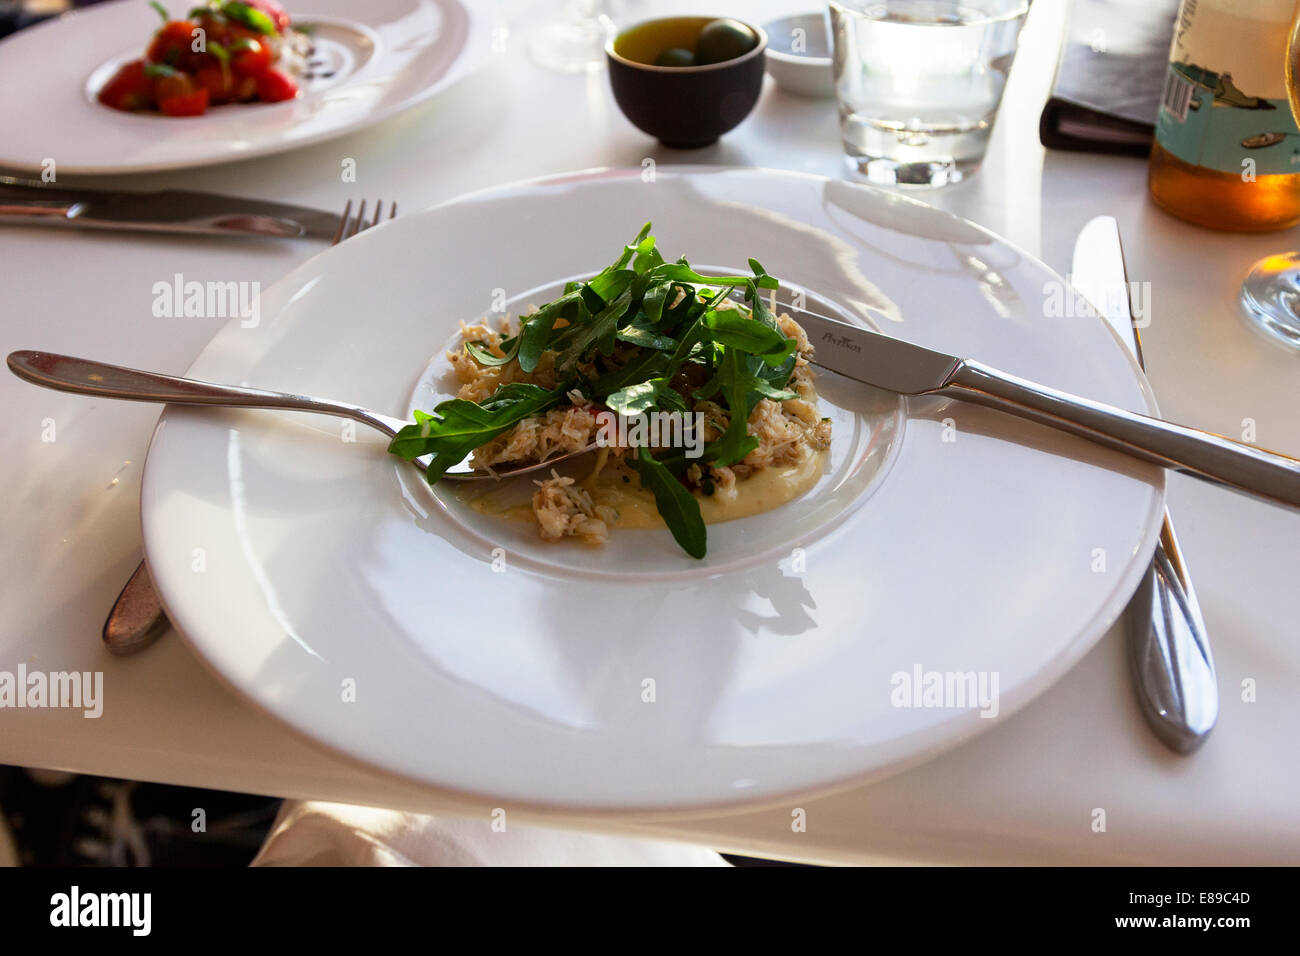 Crab and rocket salad food meal Fifteen Jamie Oliver's Cornwall Cornish west country typical food - Stock Image